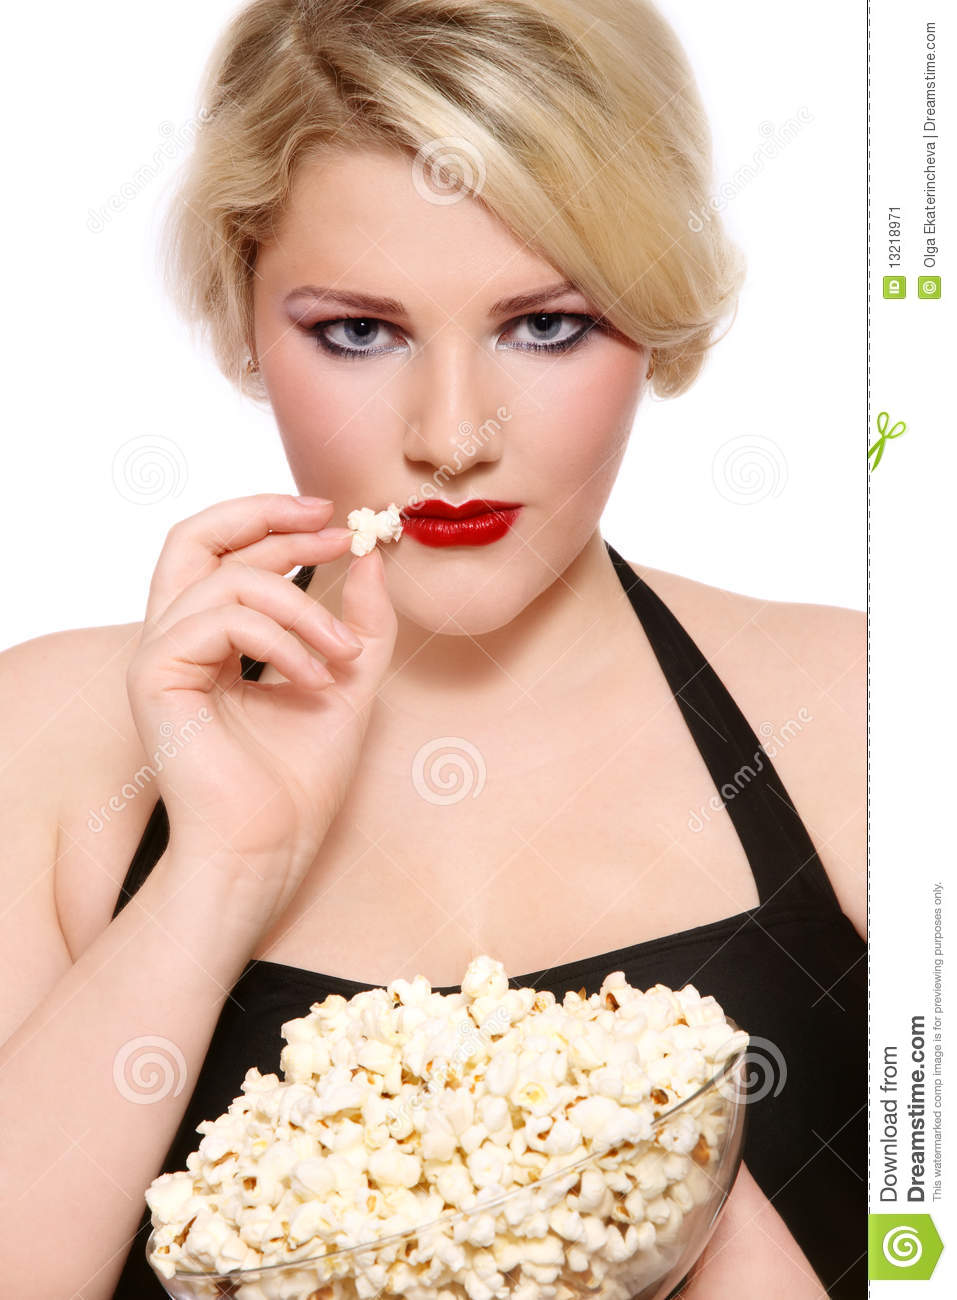 blond girl with popcorn stock image image of glam glamour 13218971